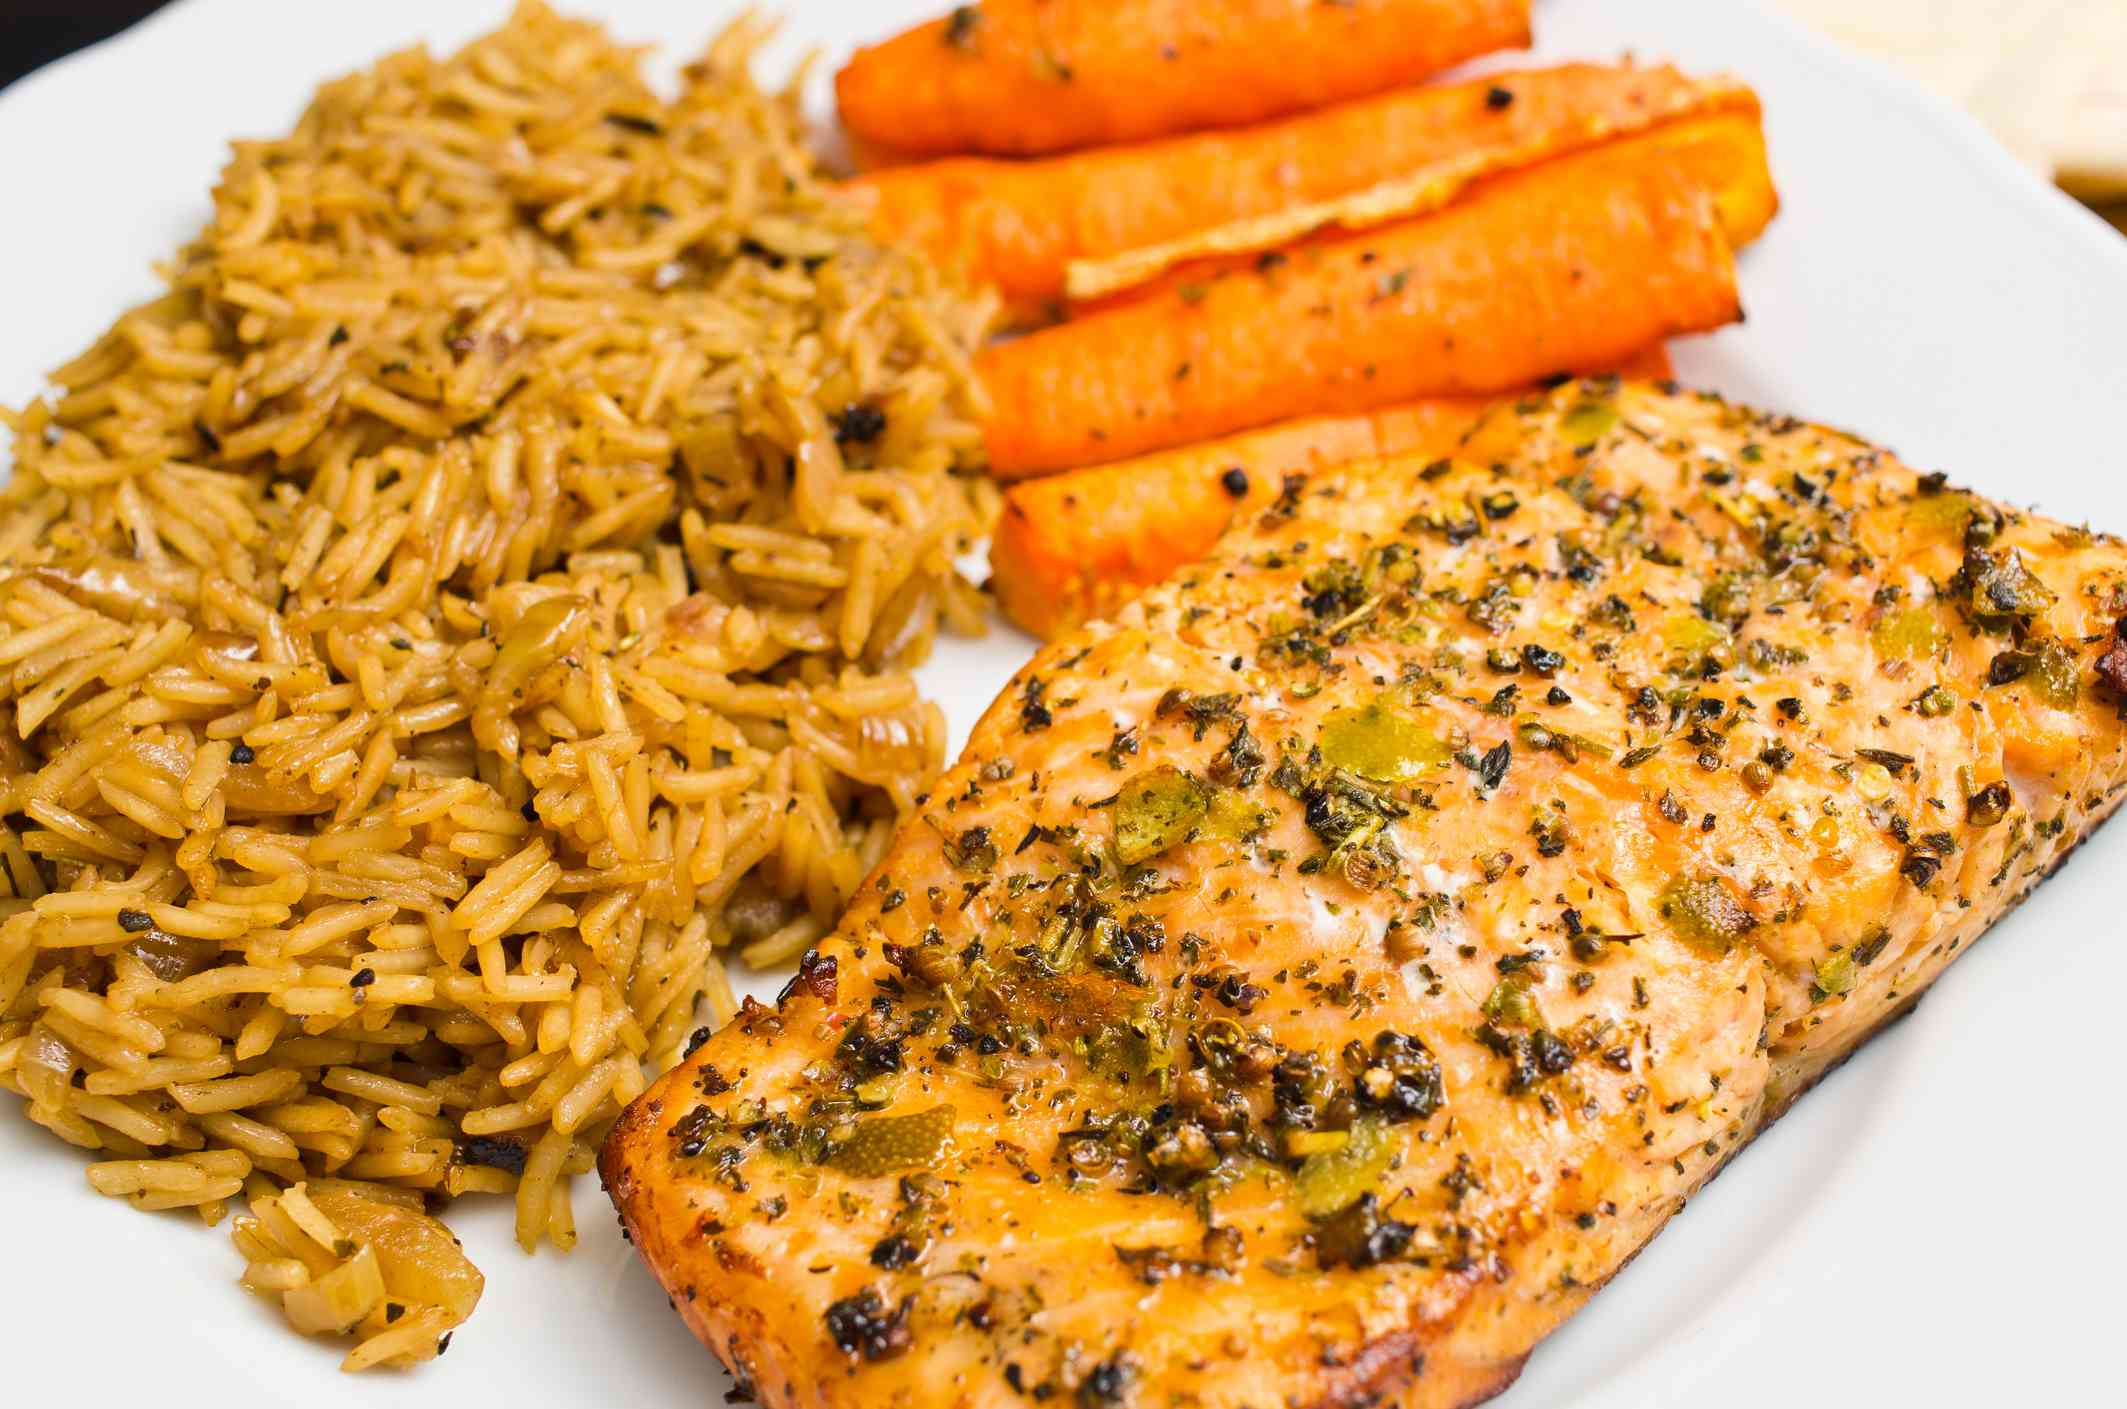 Salmon with carrots and rice